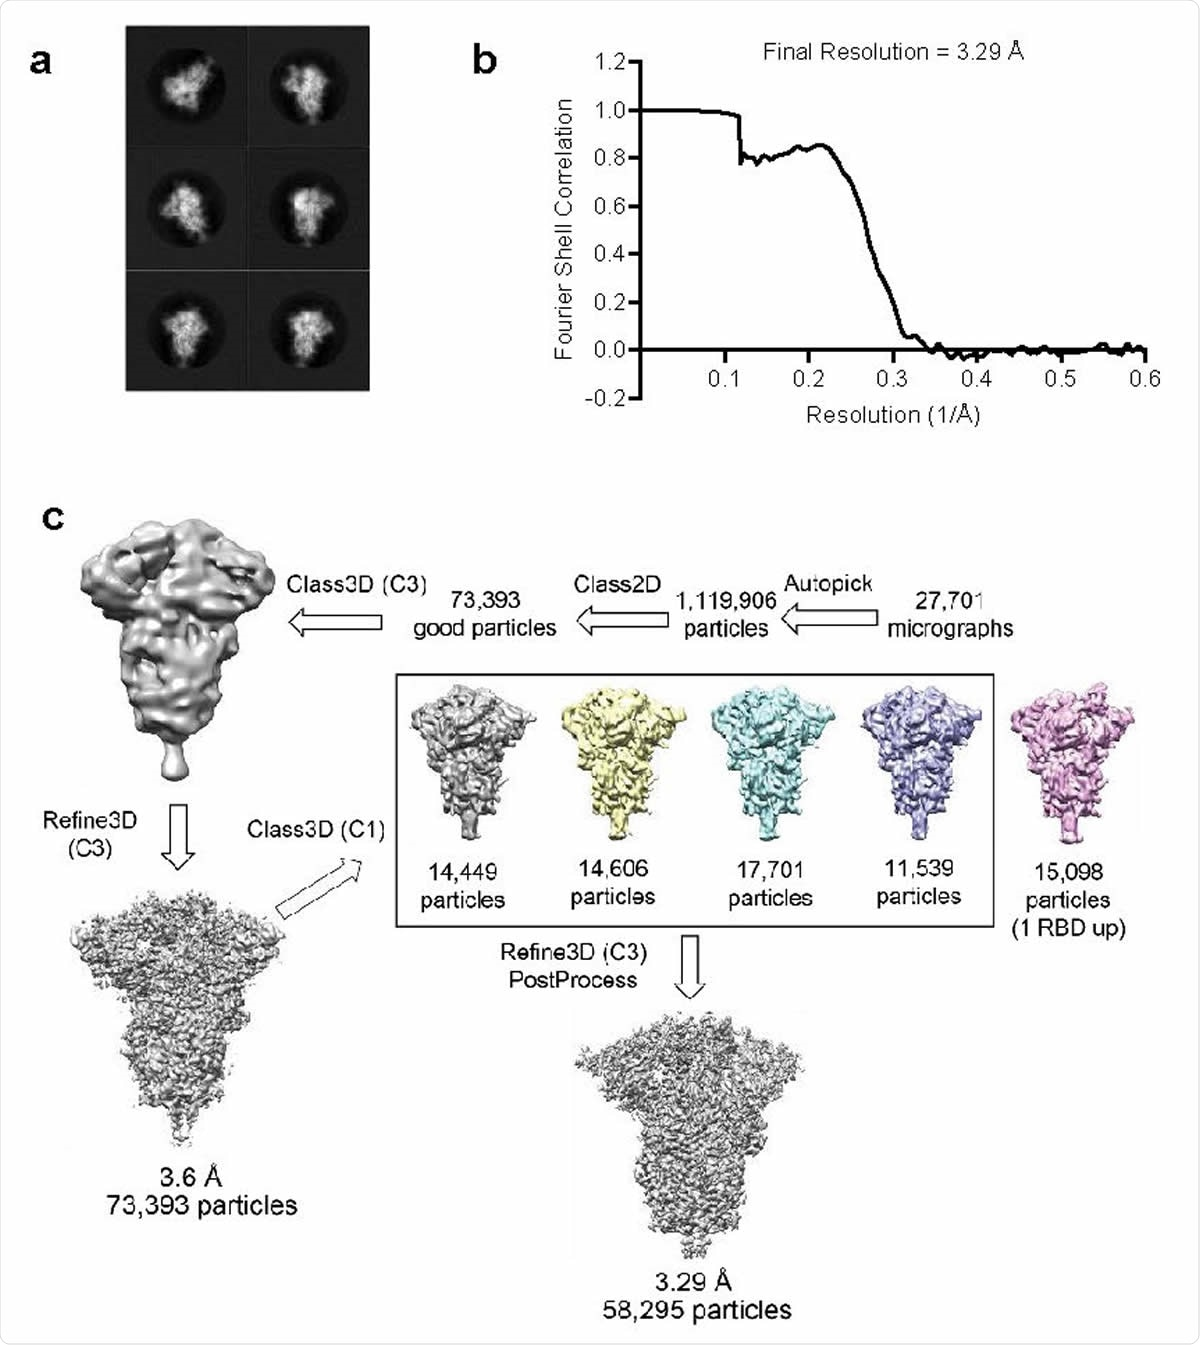 Structure analysis of BNT162b2-encoded P2 S by cryo-electron microscopy a, 2D class averages of TwinStrep-tagged P2 S particles extracted from cryo-EM micrographs.. Box edge: 39.2 nm in each dimension. b, Fourier shell correlation curve from RELION gold-standard refinement of the P2 S trimer. c, Flowchart for cryo-EM data processing of the complex.